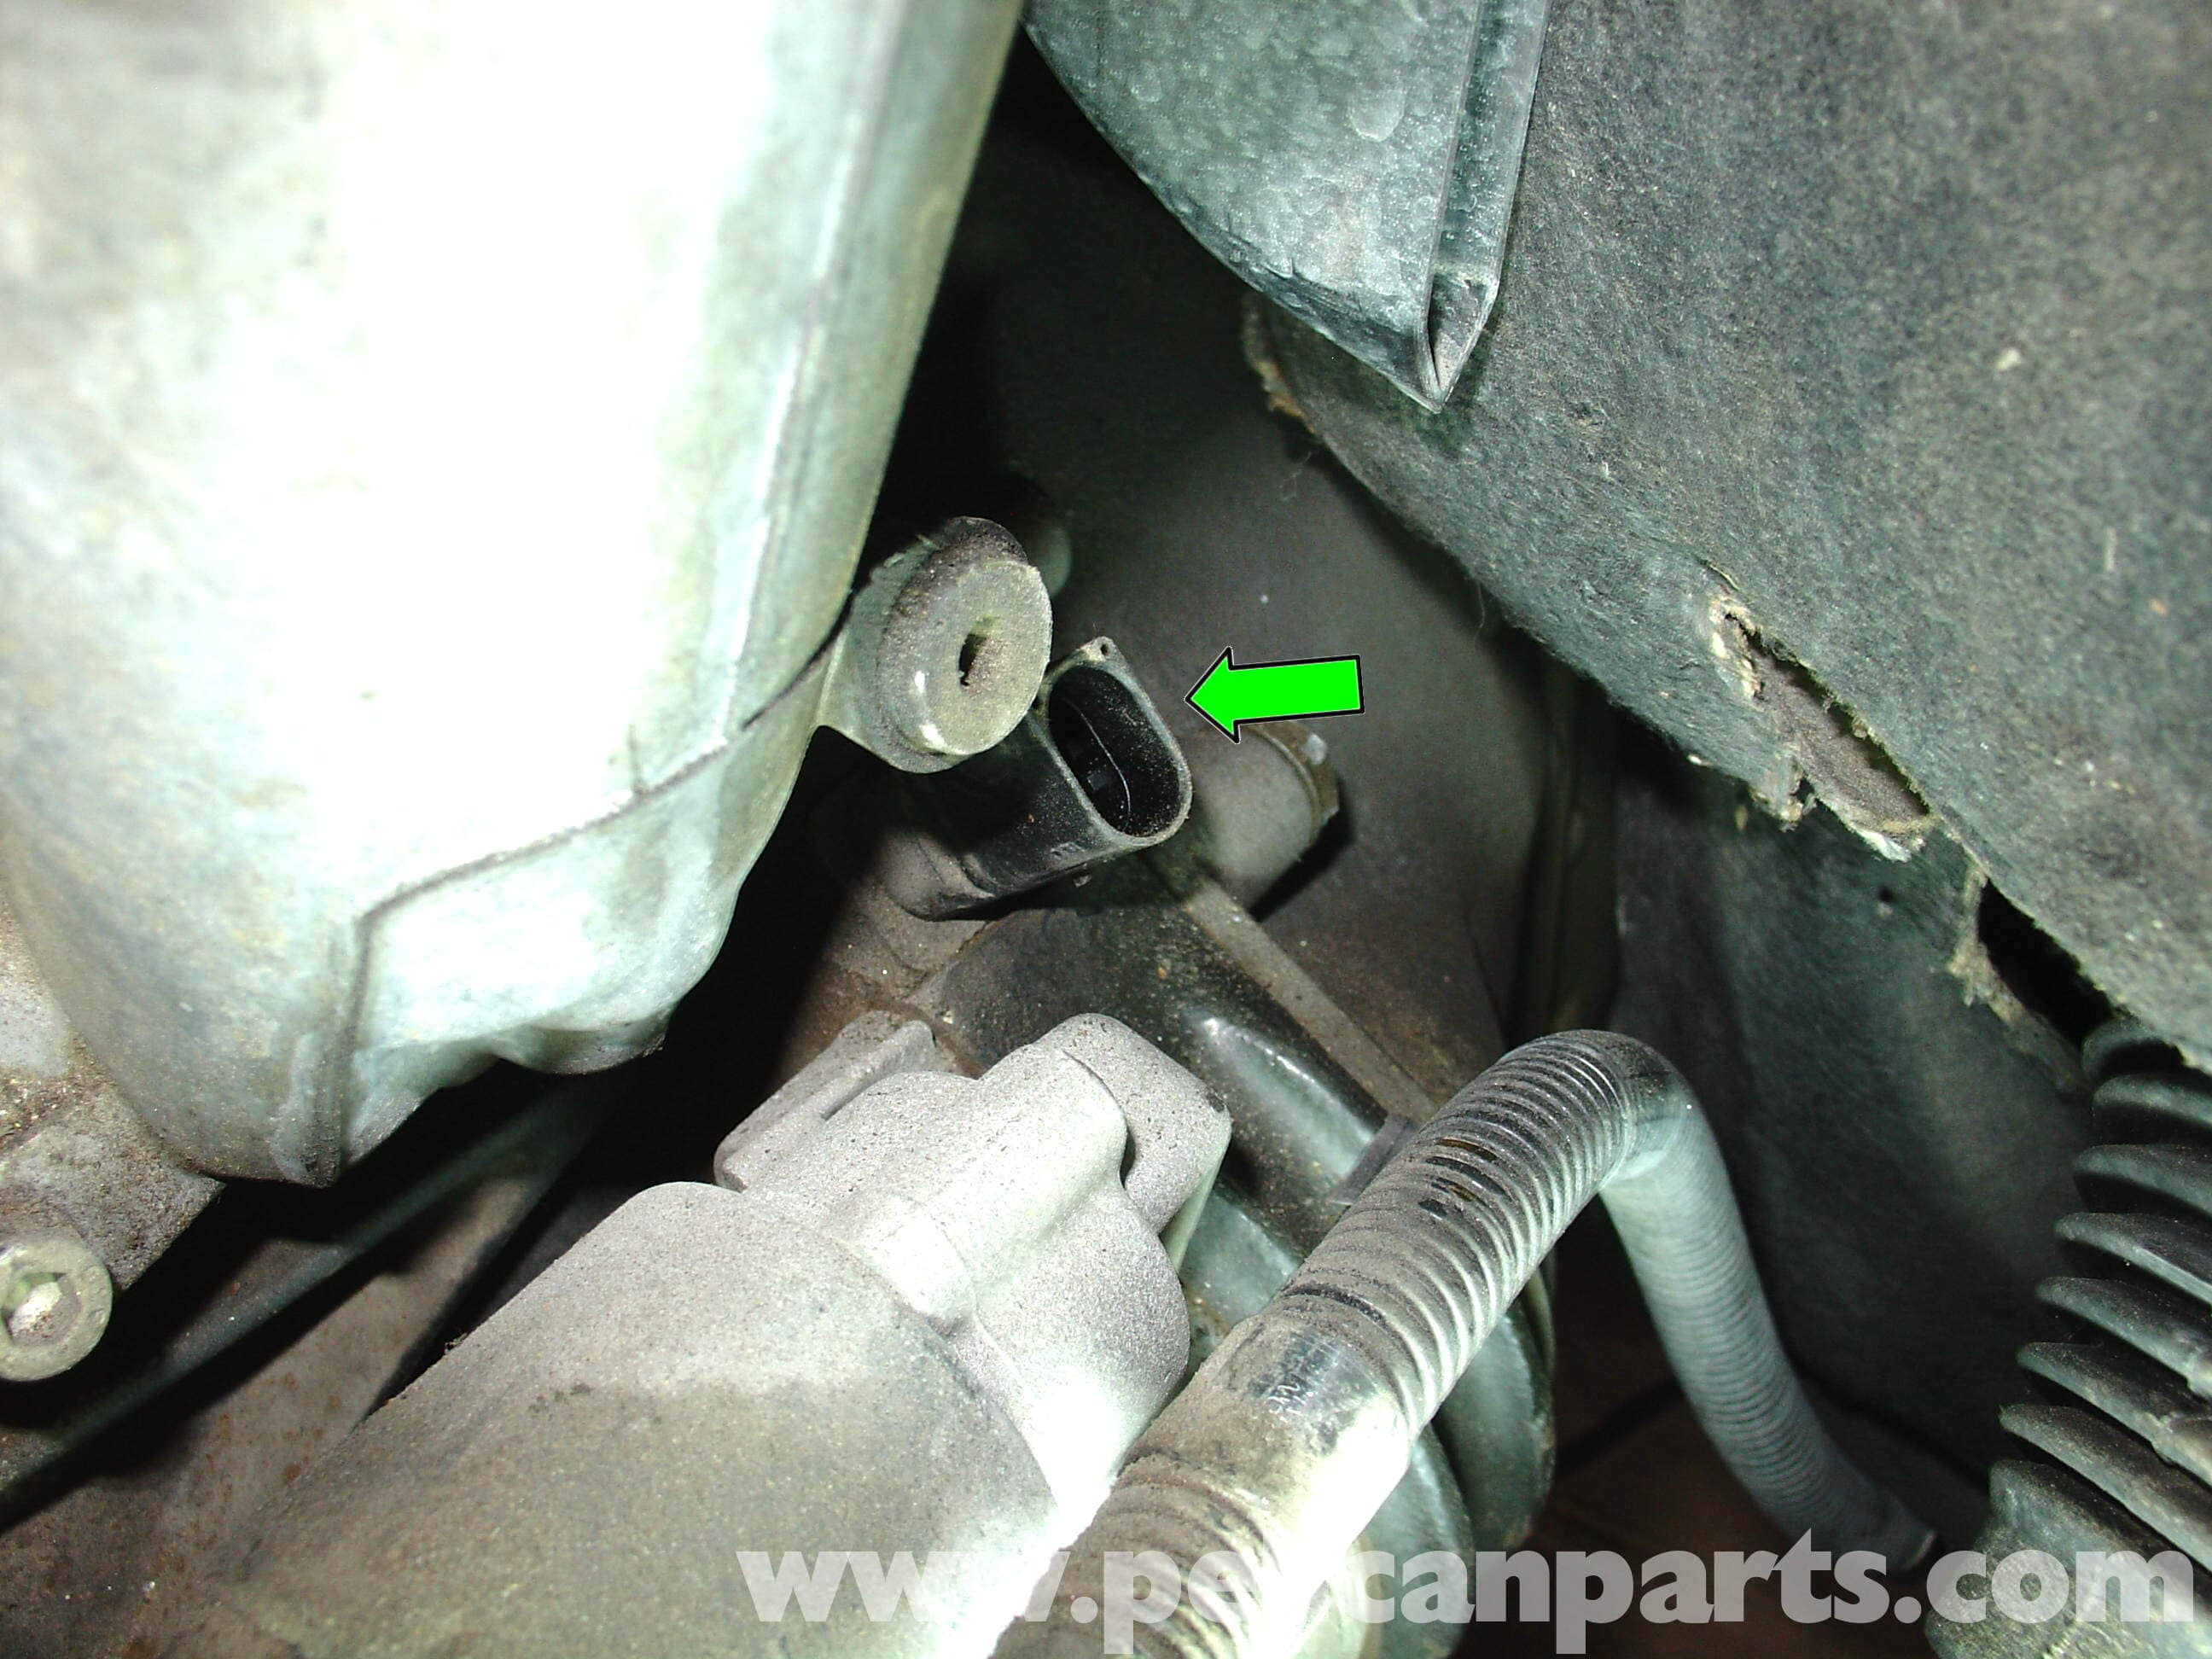 Saab 93 Wiring Diagram Mercedes Crankshaft Position Sensor Location Large Image Extra Benz W210 Replacement